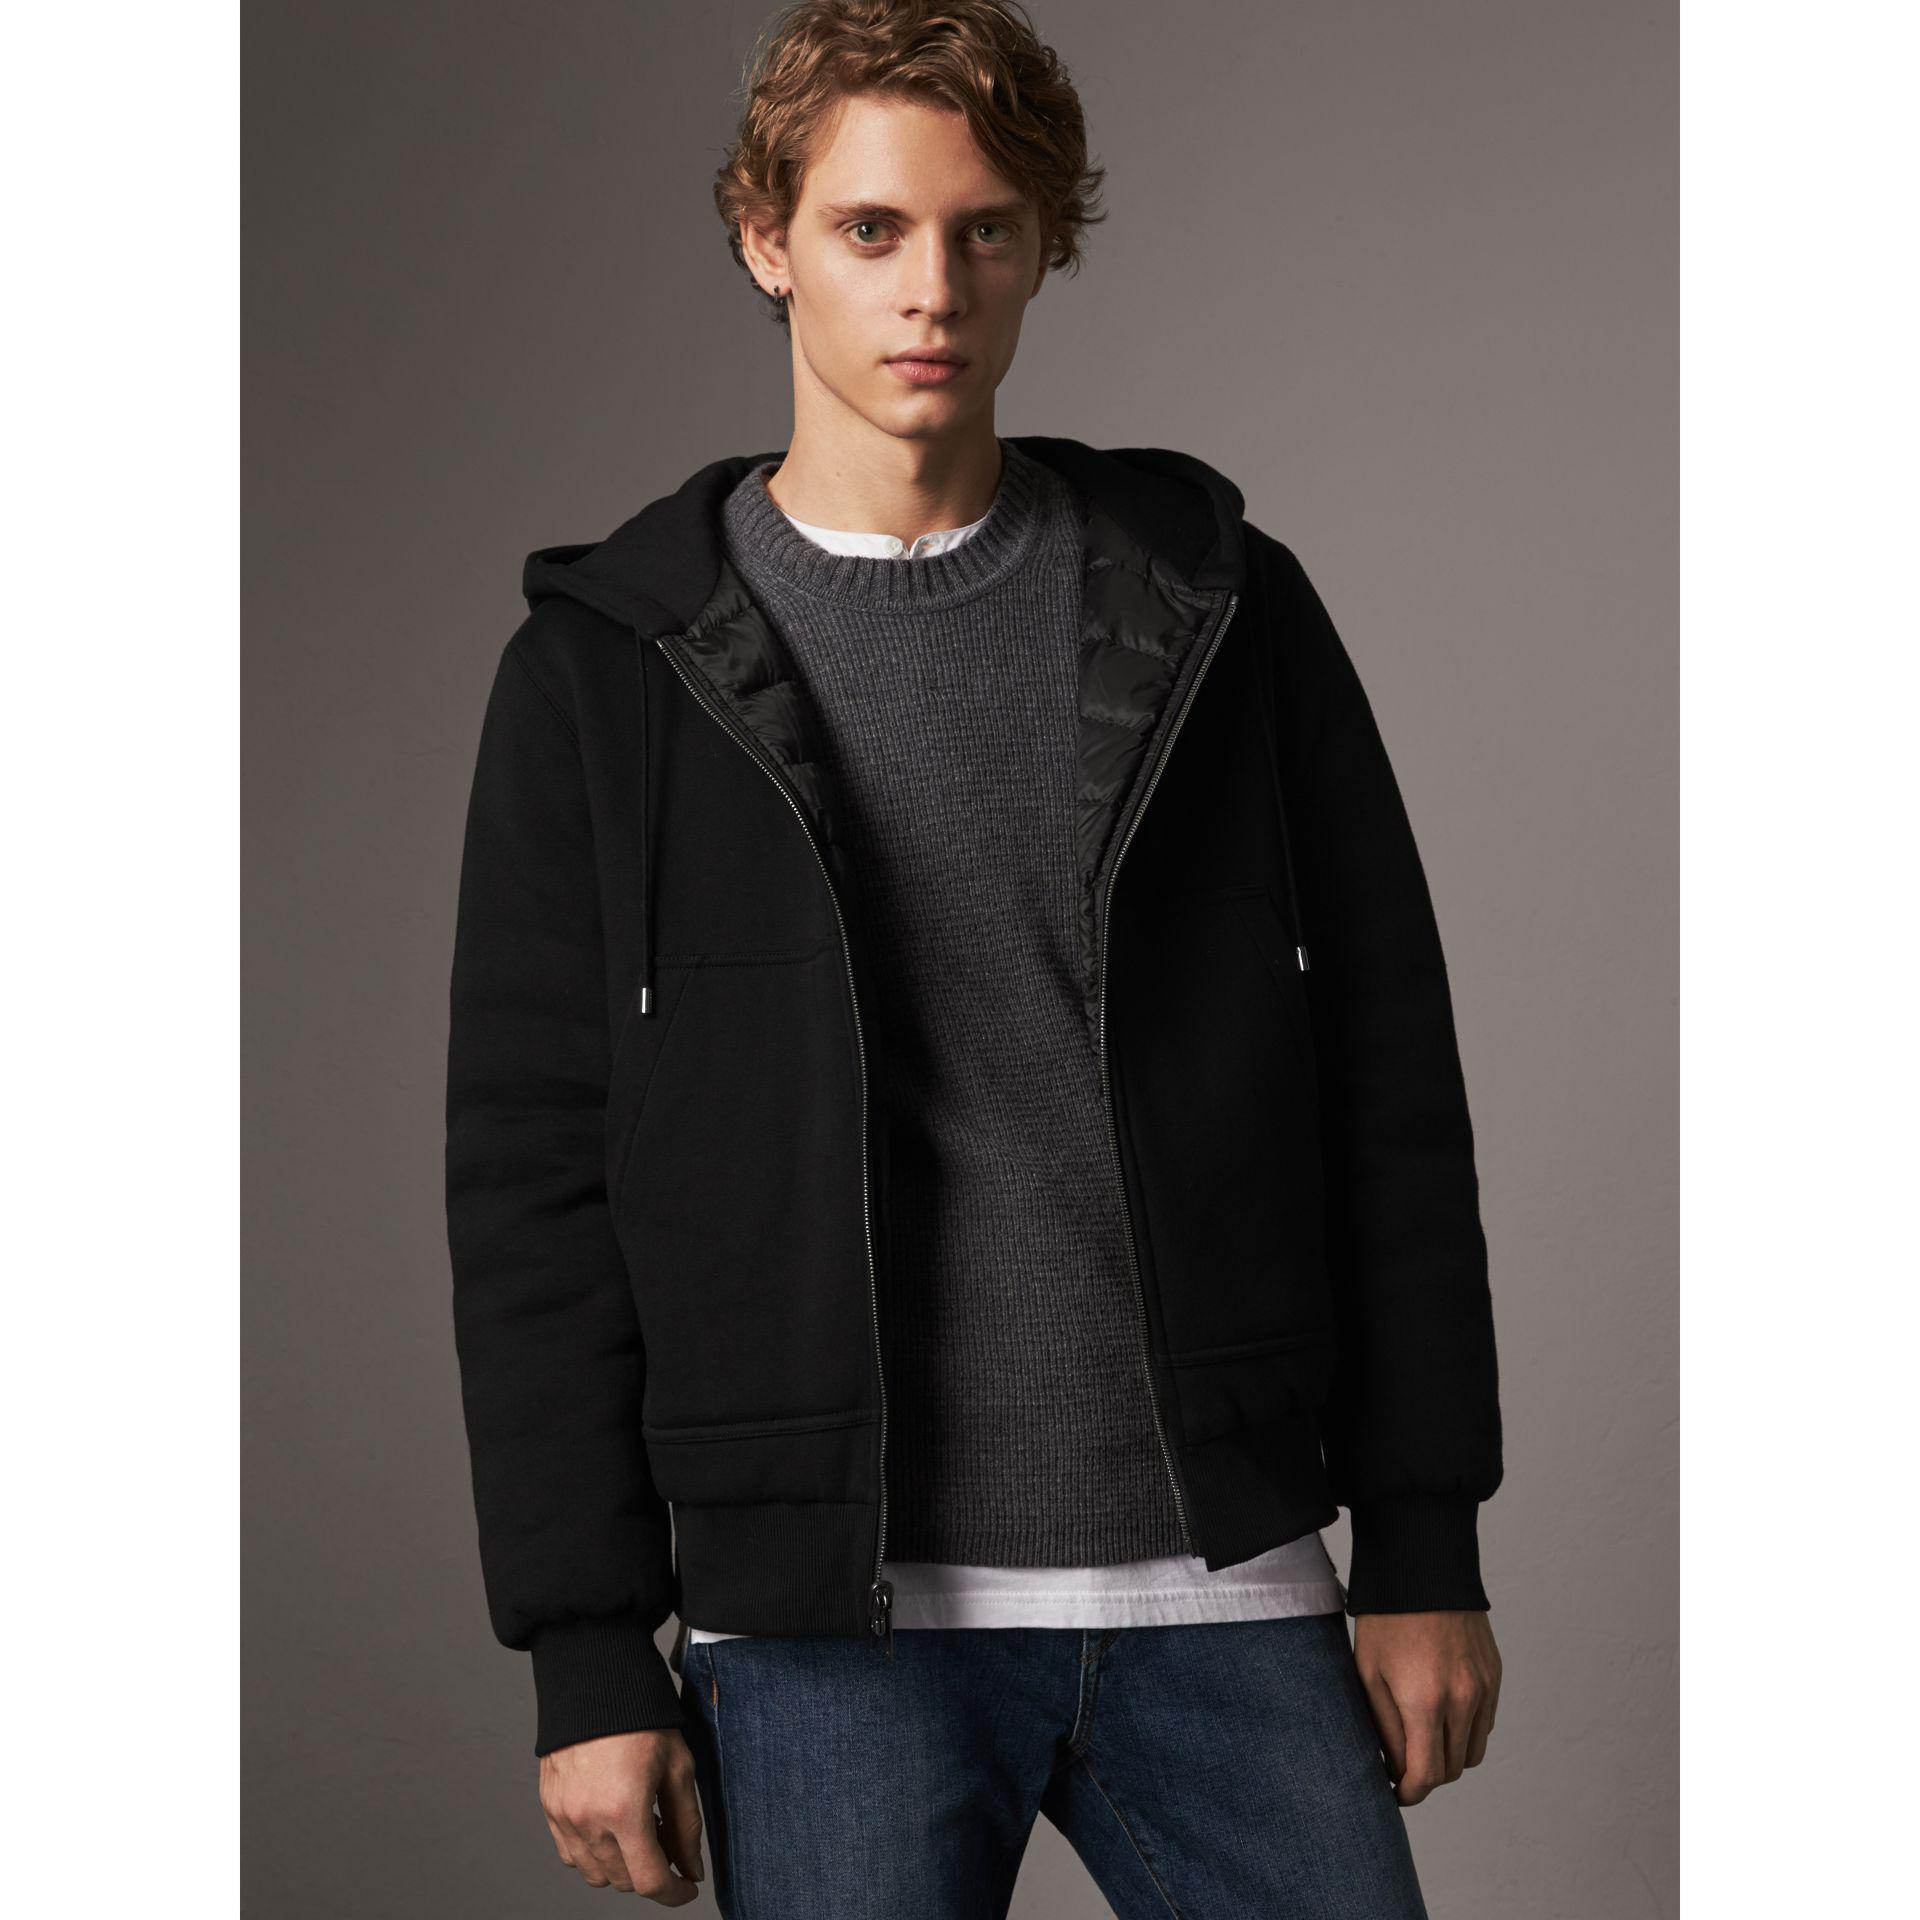 Burberry Reversible Down-filled Hooded Bomber Jacket Clearance Wide Range Of Purchase Cheap Discount Exclusive 5UbhwWcJP0